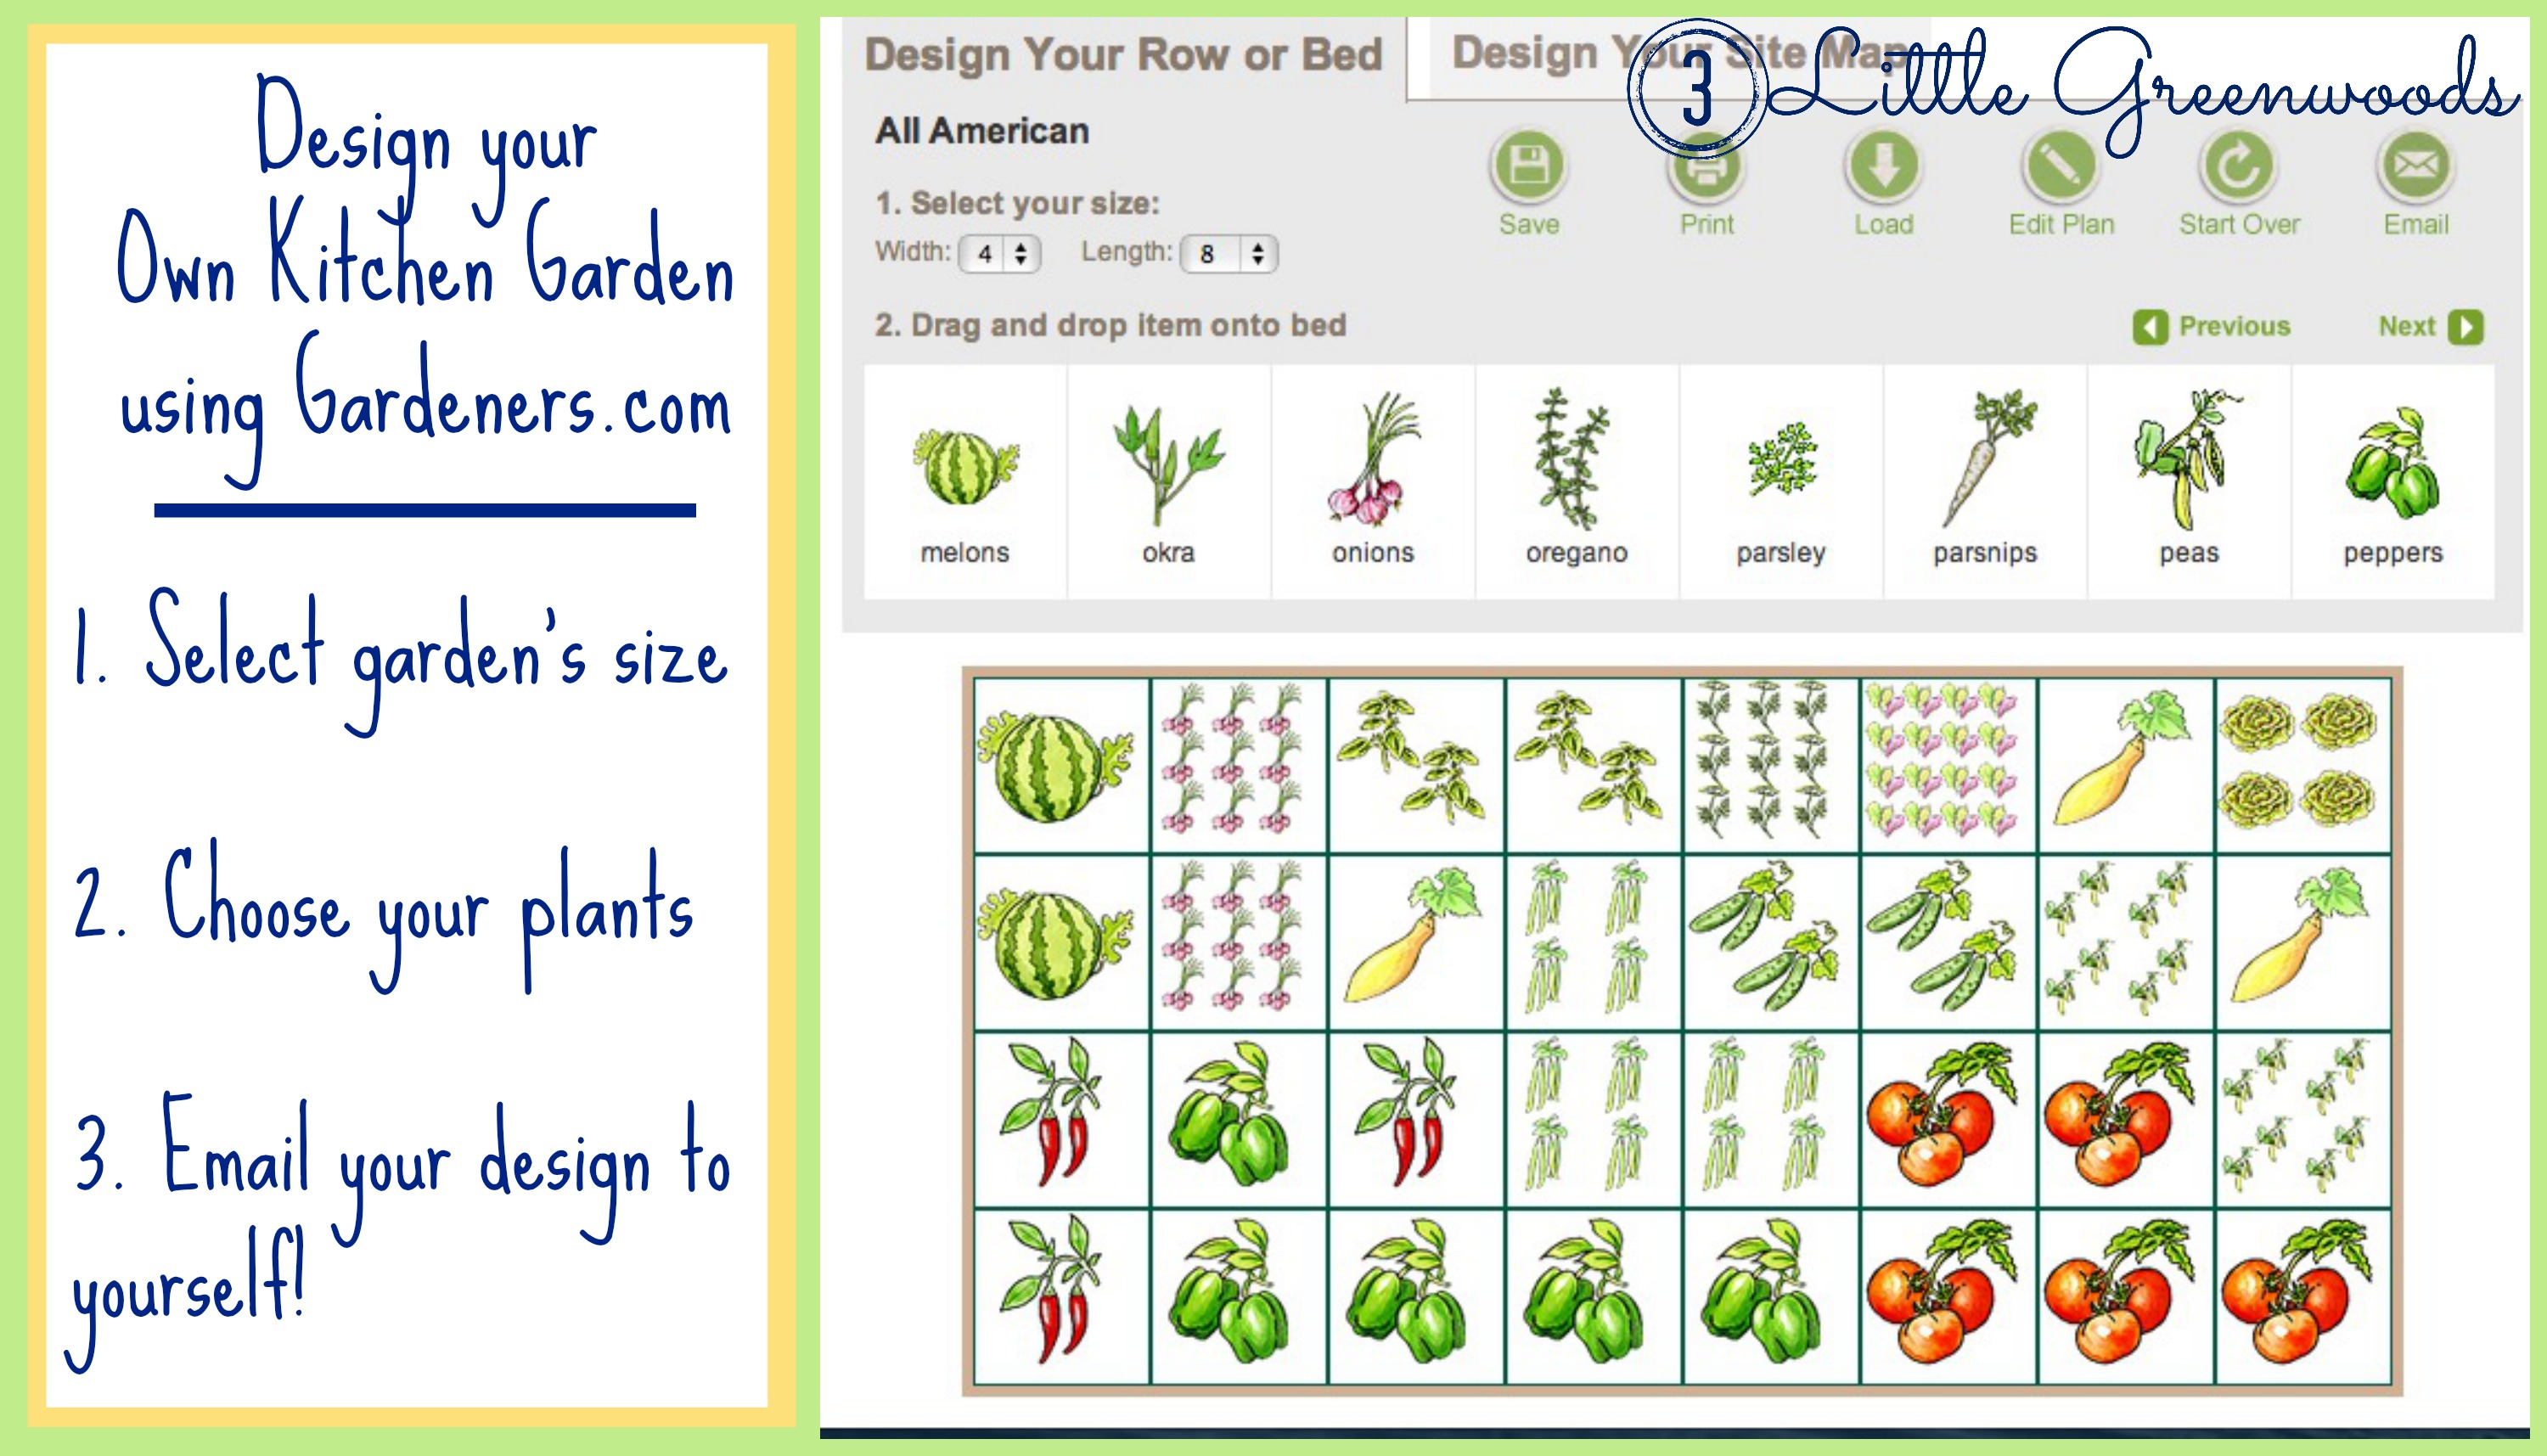 DIY Container Garden - Planning and Planting on easy permaculture ideas, easy travel ideas, easy composting ideas, easy landscaping ideas, easy diy ideas, easy topiary ideas, easy christmas ideas, easy spring ideas, easy container plant ideas, easy entertaining ideas, easy container flower gardening, easy food ideas, easy garden, easy woodworking ideas, easy fall ideas, easy flower gardening ideas, flowers for flower pots ideas, easy sewing ideas, easy recycling ideas, easy xeriscaping ideas,